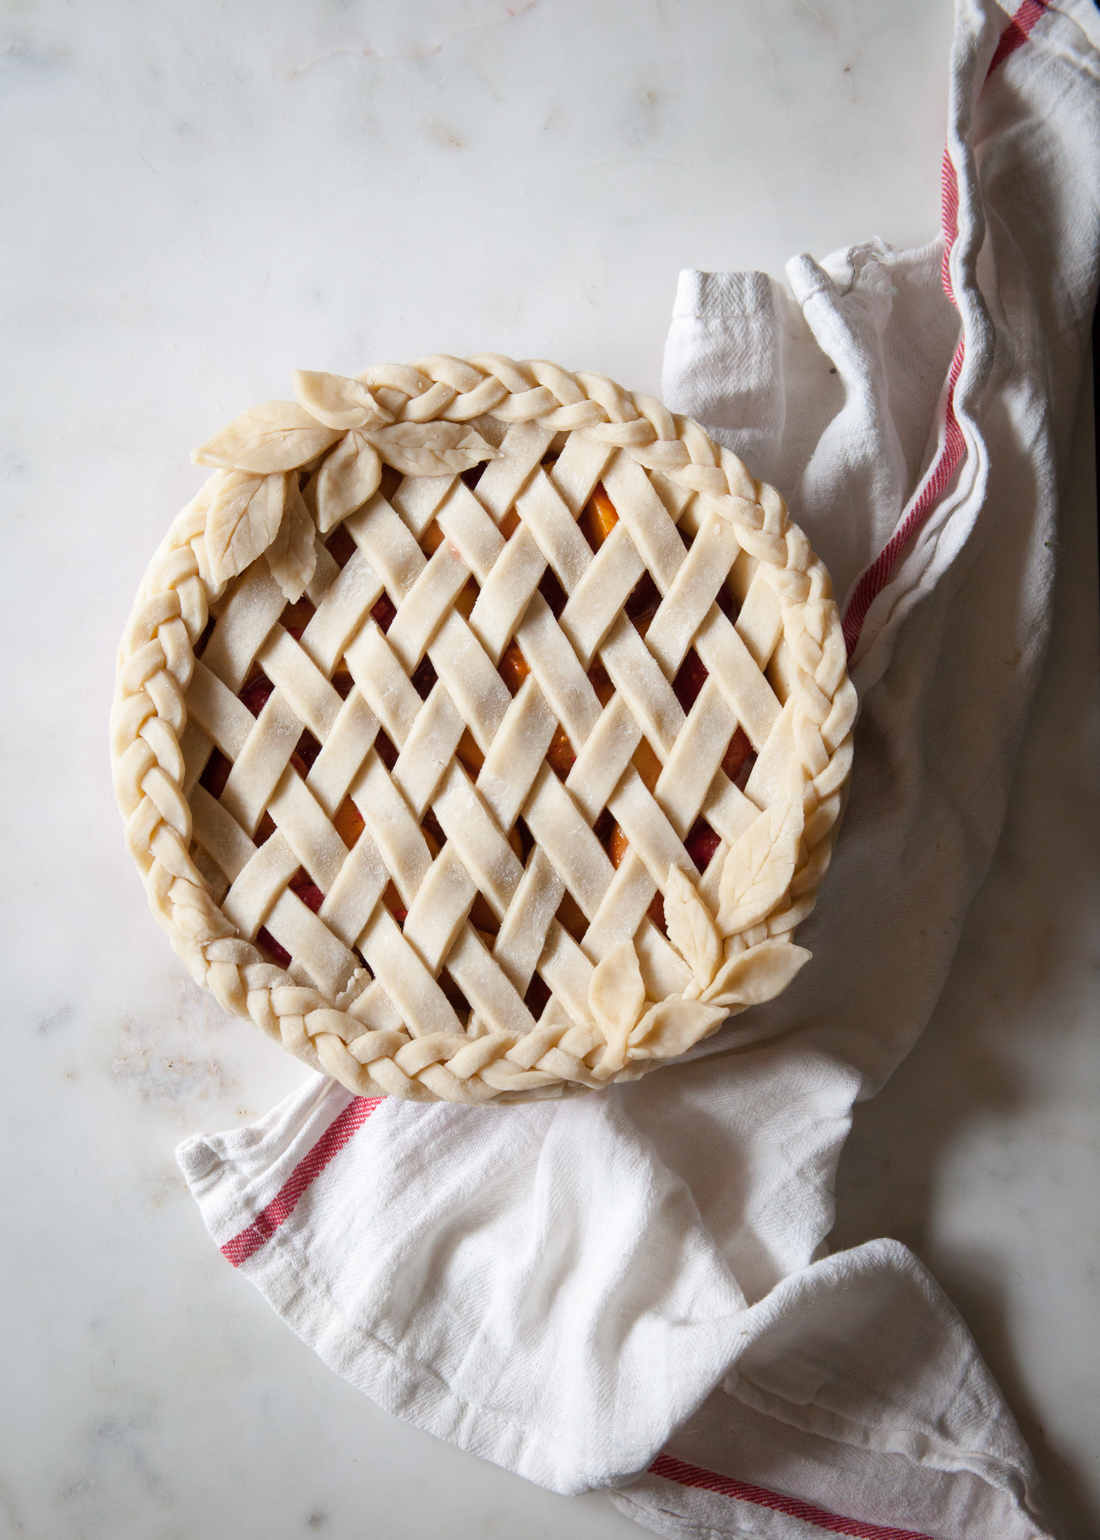 Apricot Raspberry Pie with an all butter crust and braided, lattice design.